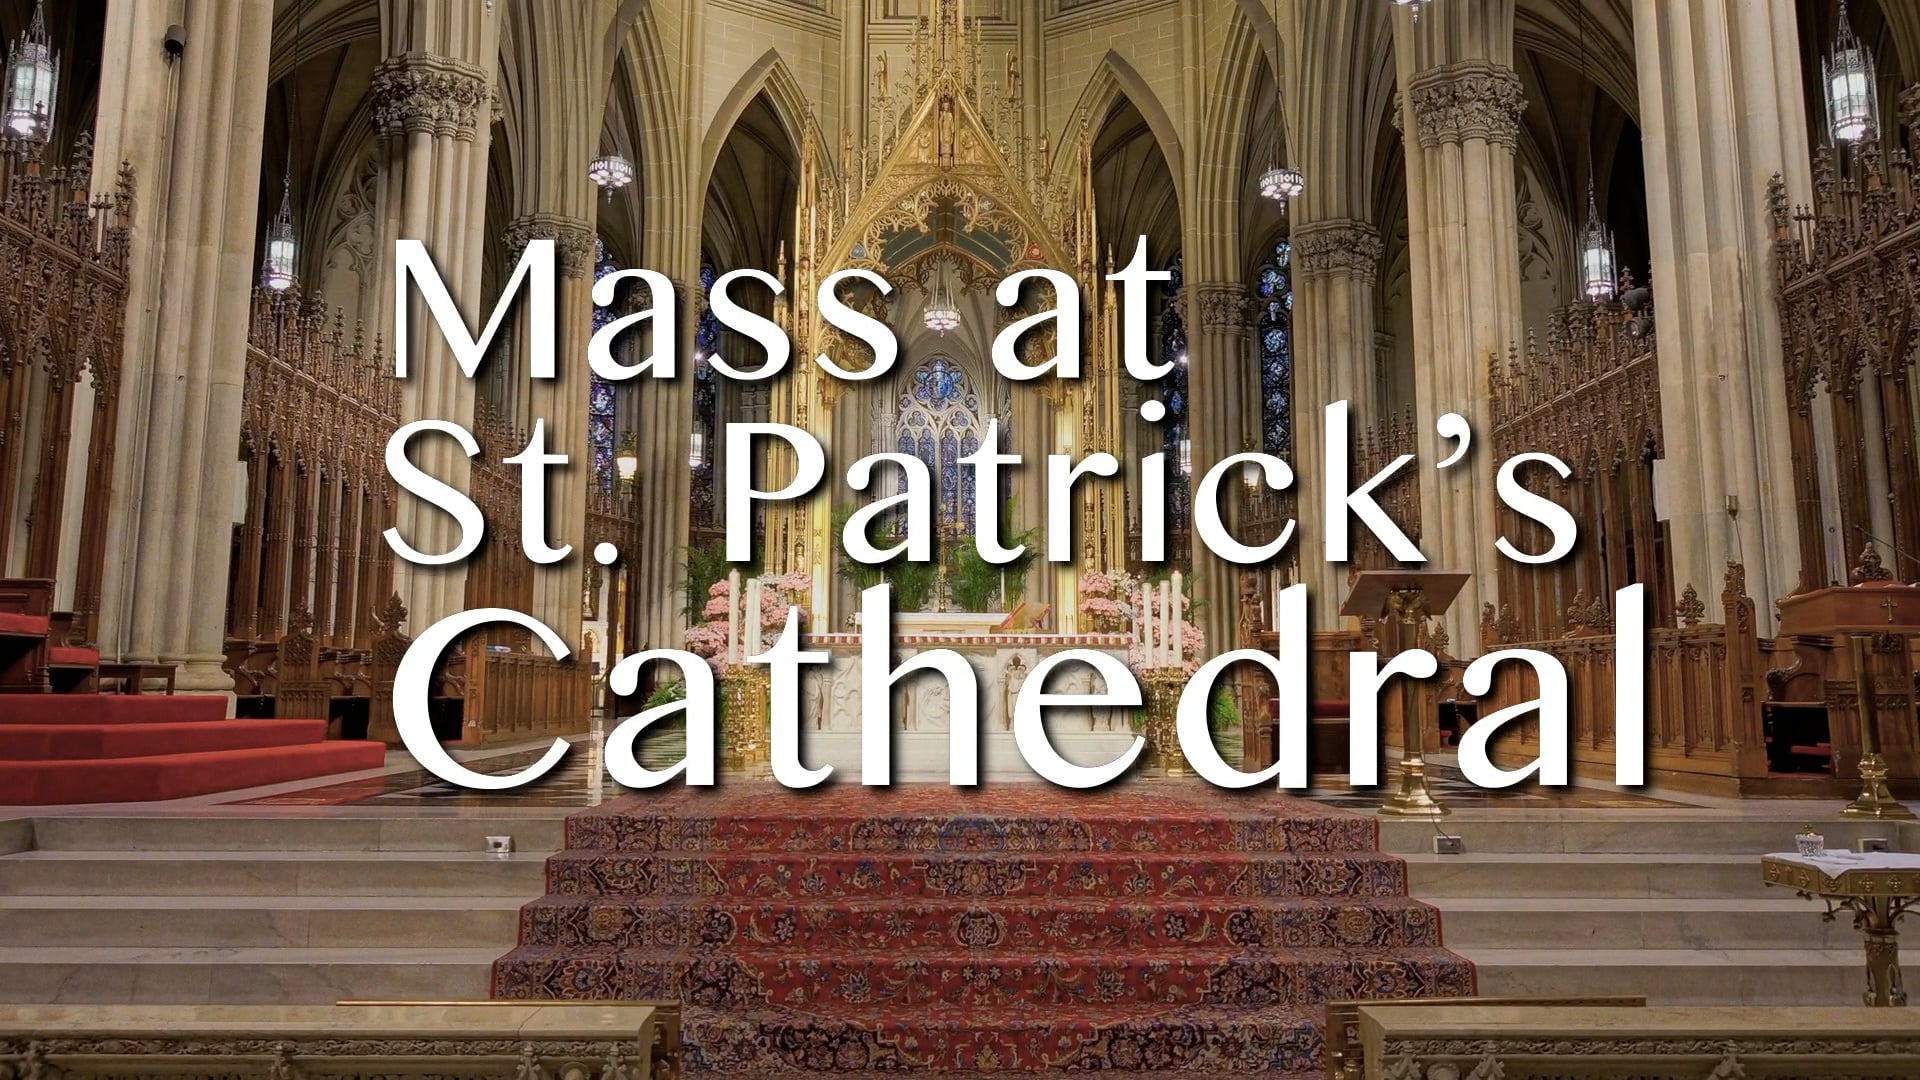 Mass from St. Patrick's Cathedral - October 19, 2021